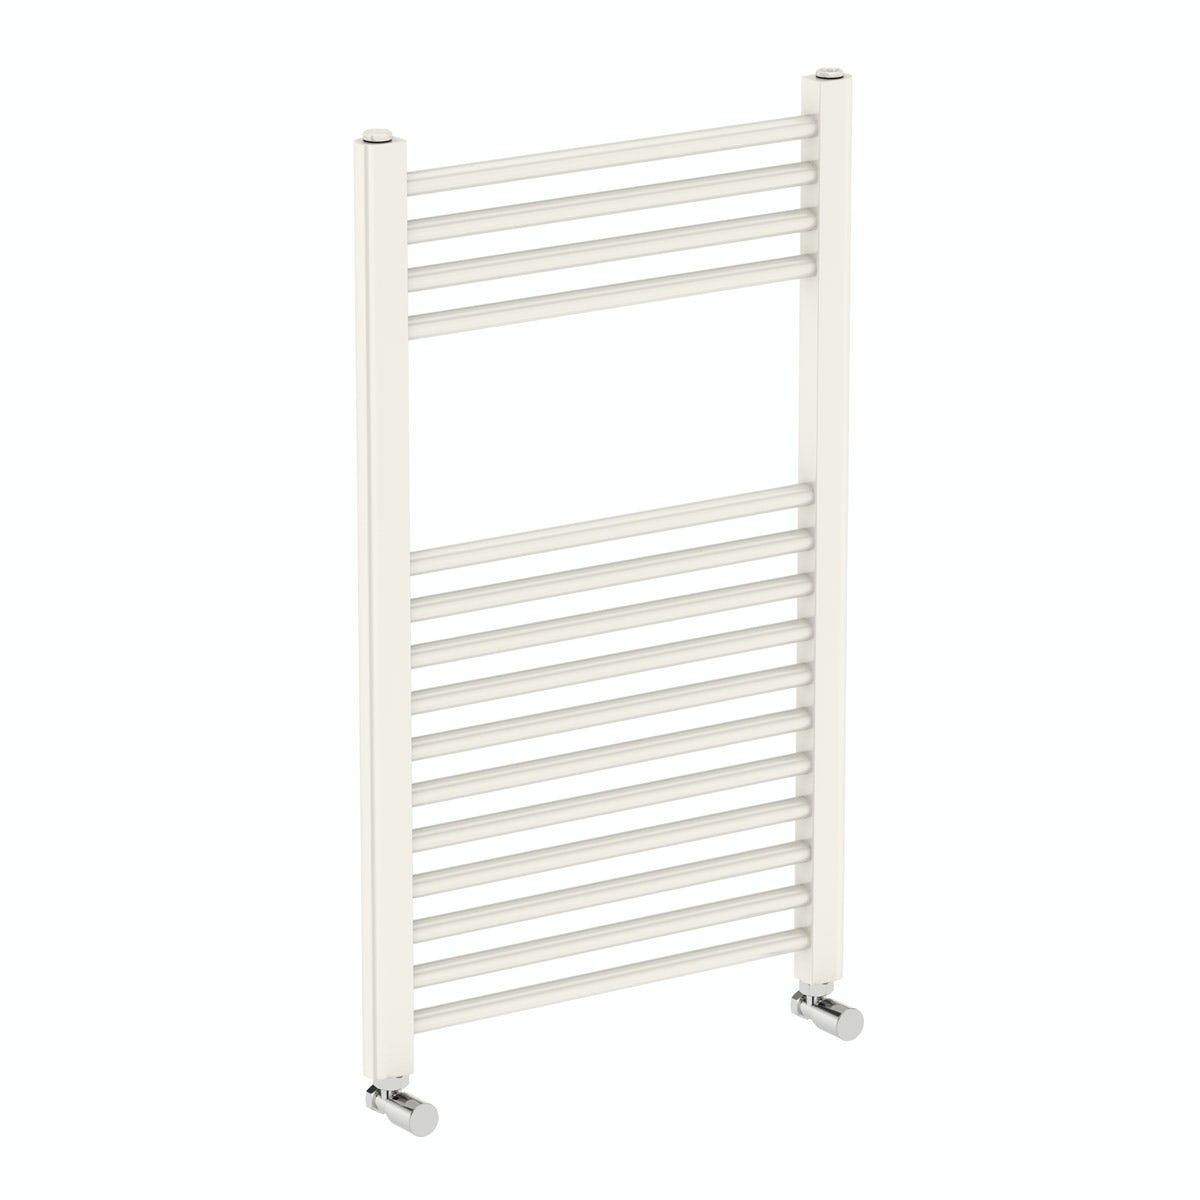 Orchard Eden round white heated towel rail 800 x 490